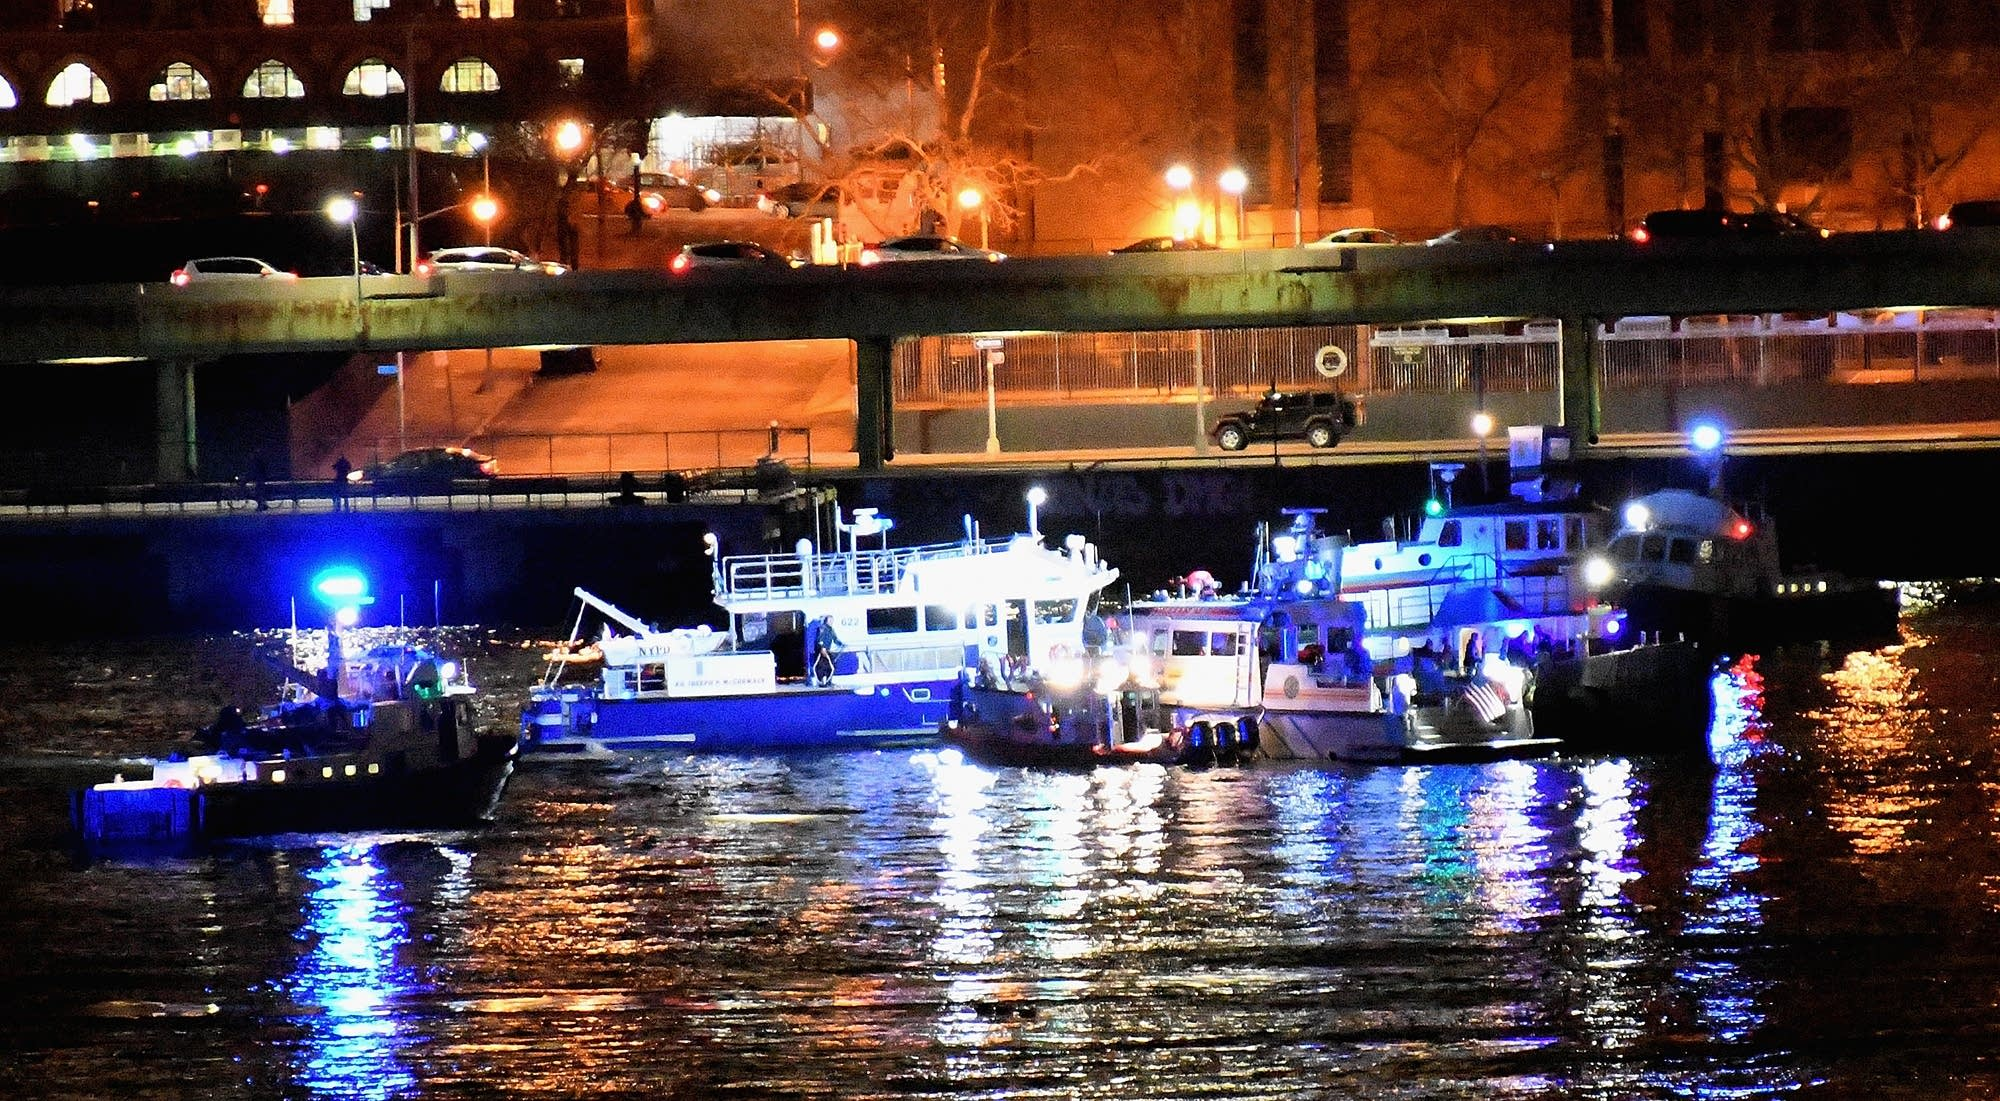 A helicopter crashed into New York City's East River